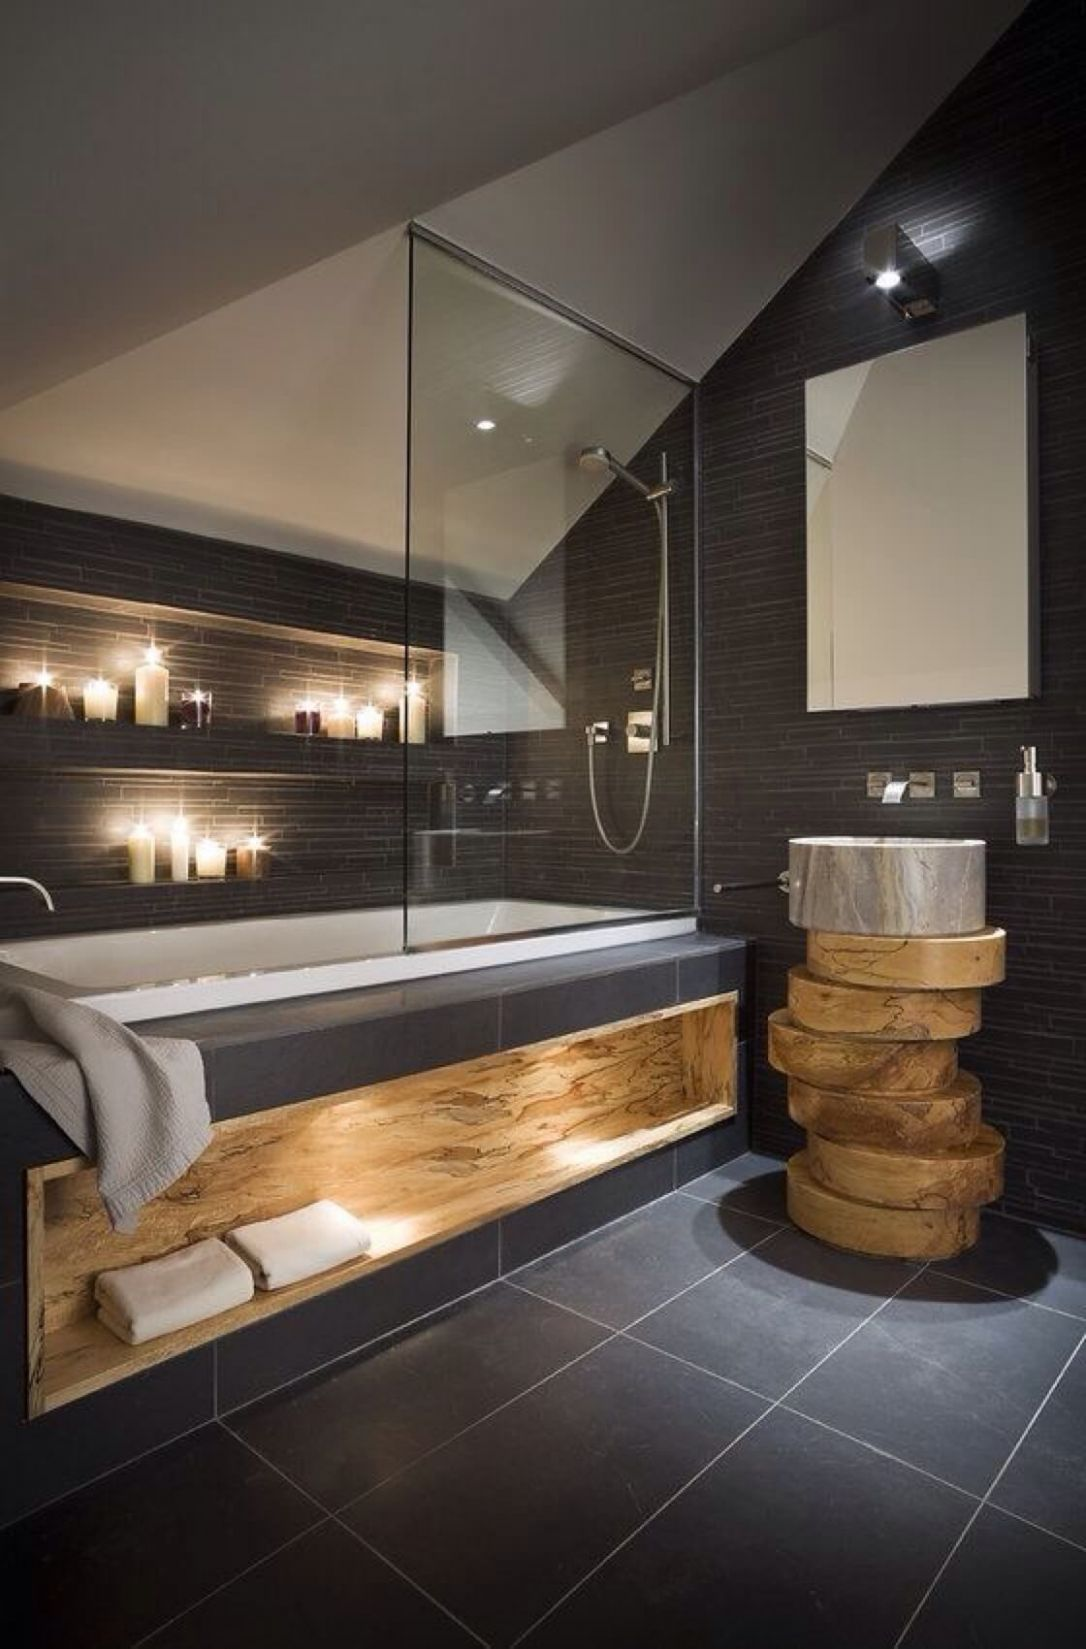 10 Best Rustic Bathroom Decor Ideas for 10